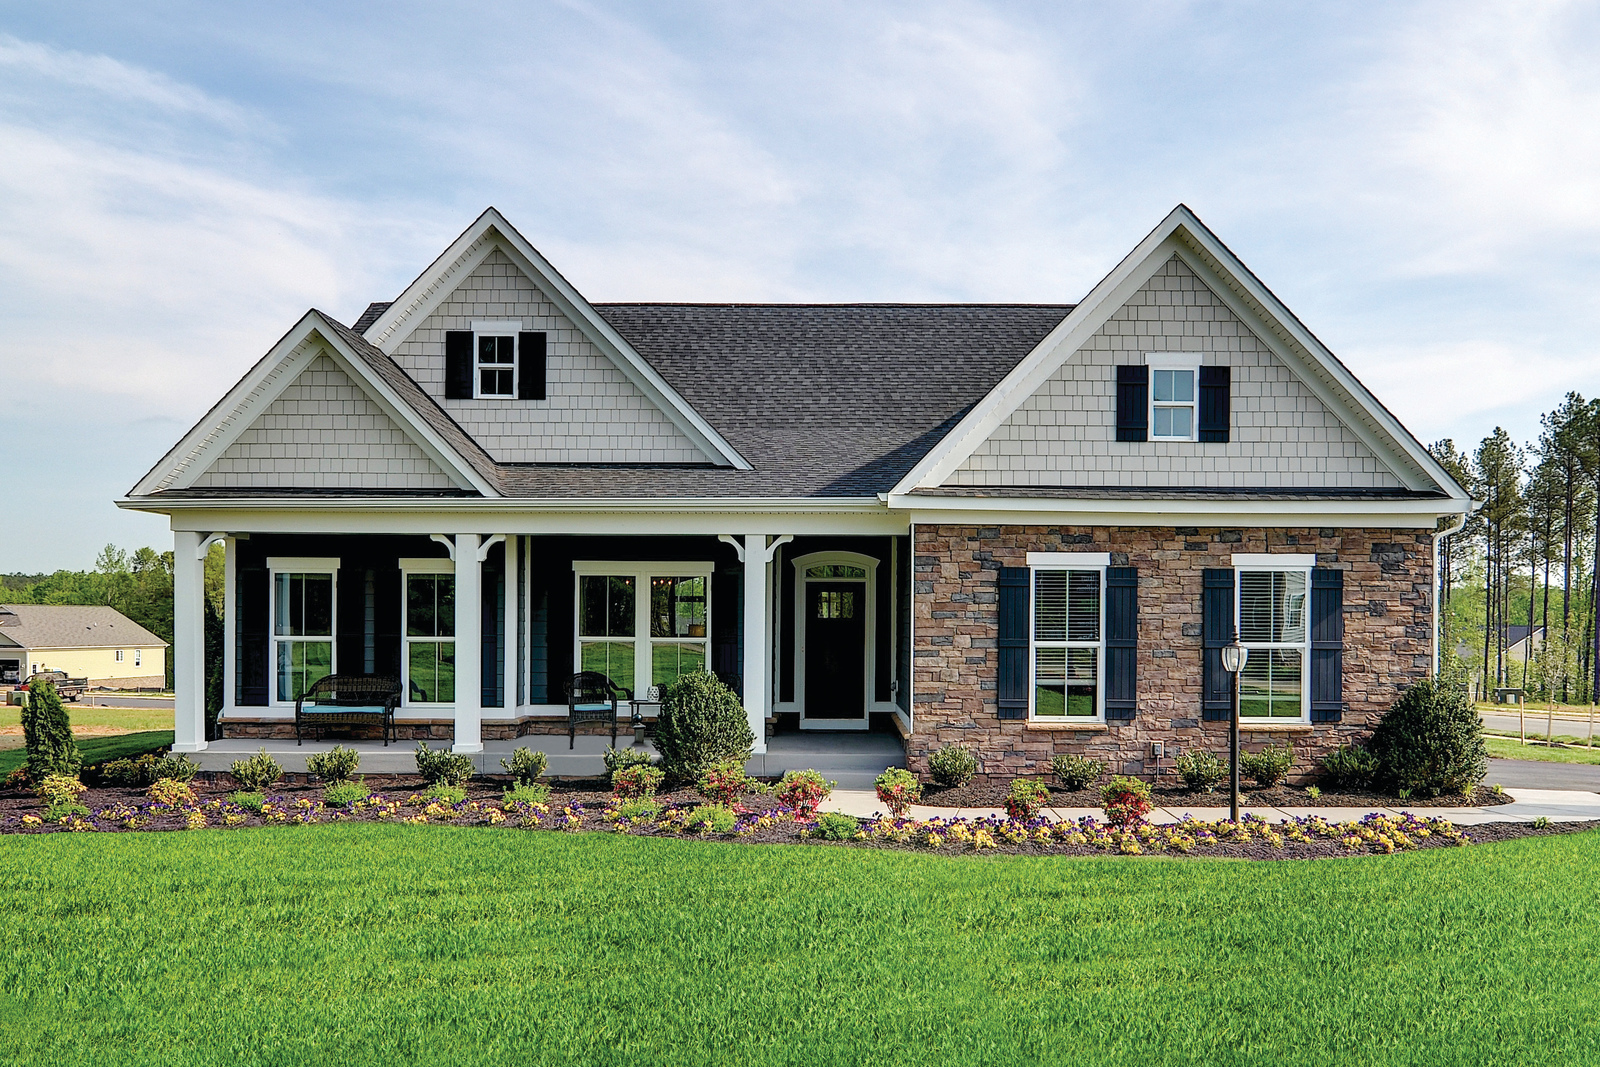 New homes for sale at stonebridge meadows in troy oh for Ohio homebuilders